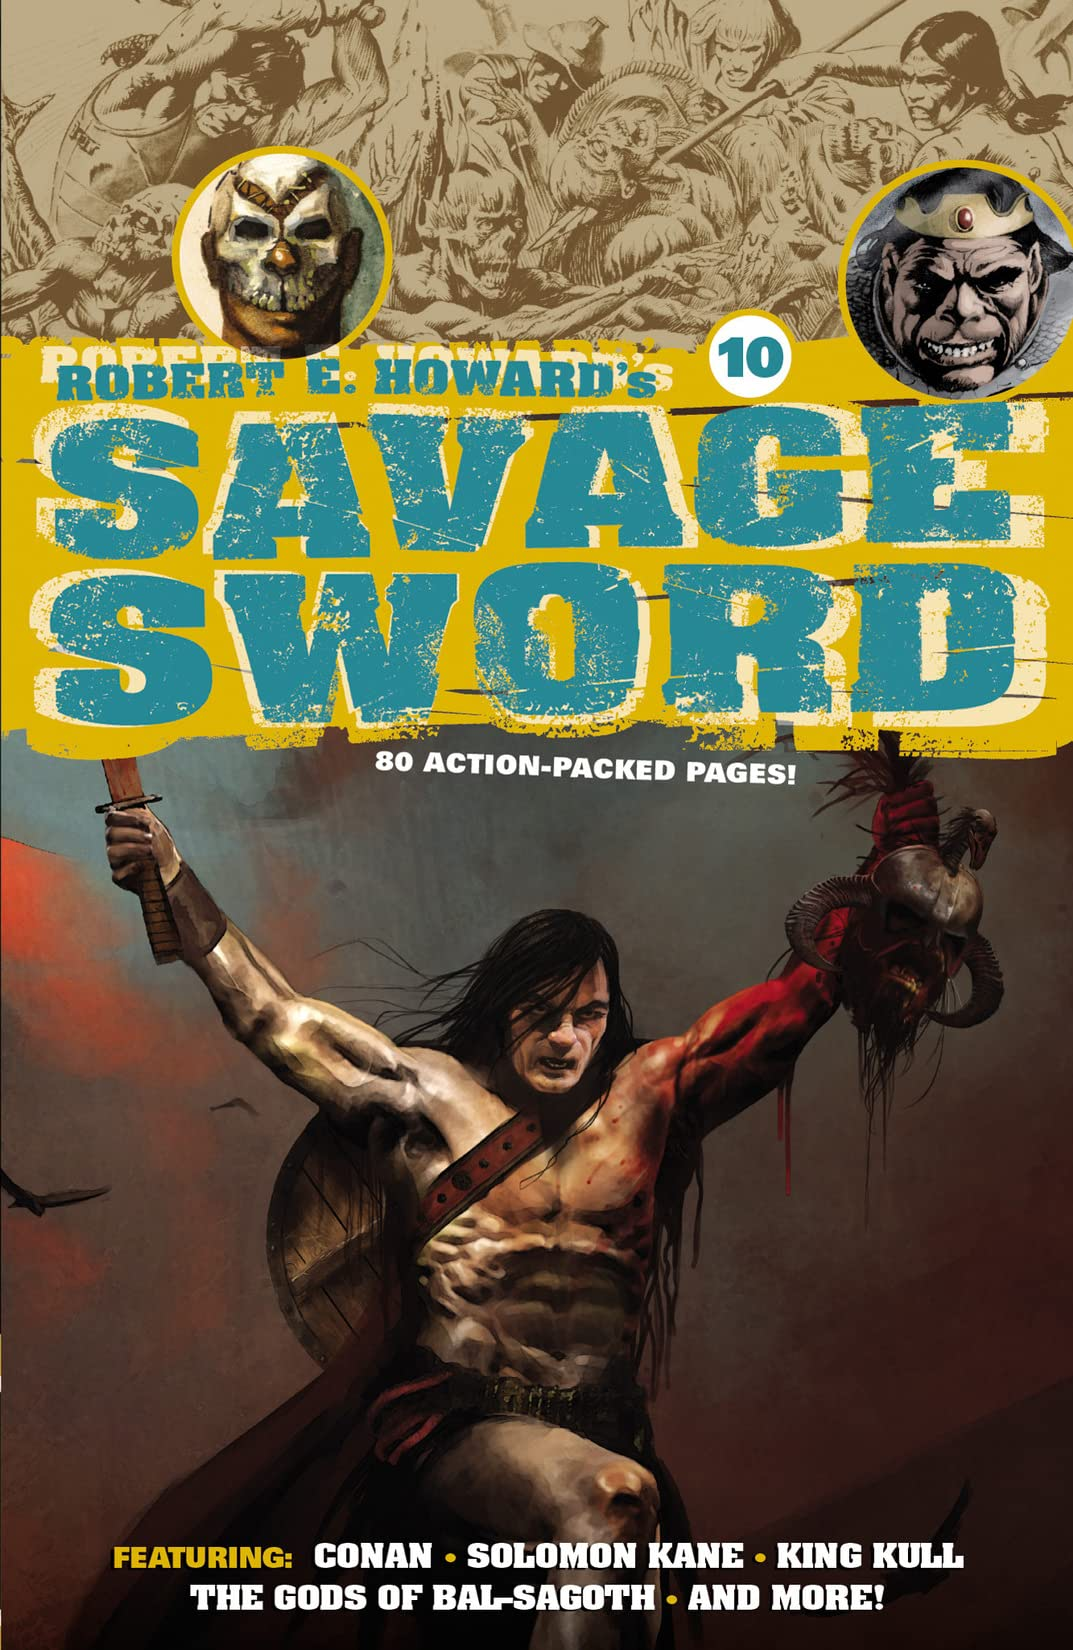 Robert E. Howard's Savage Sword #10